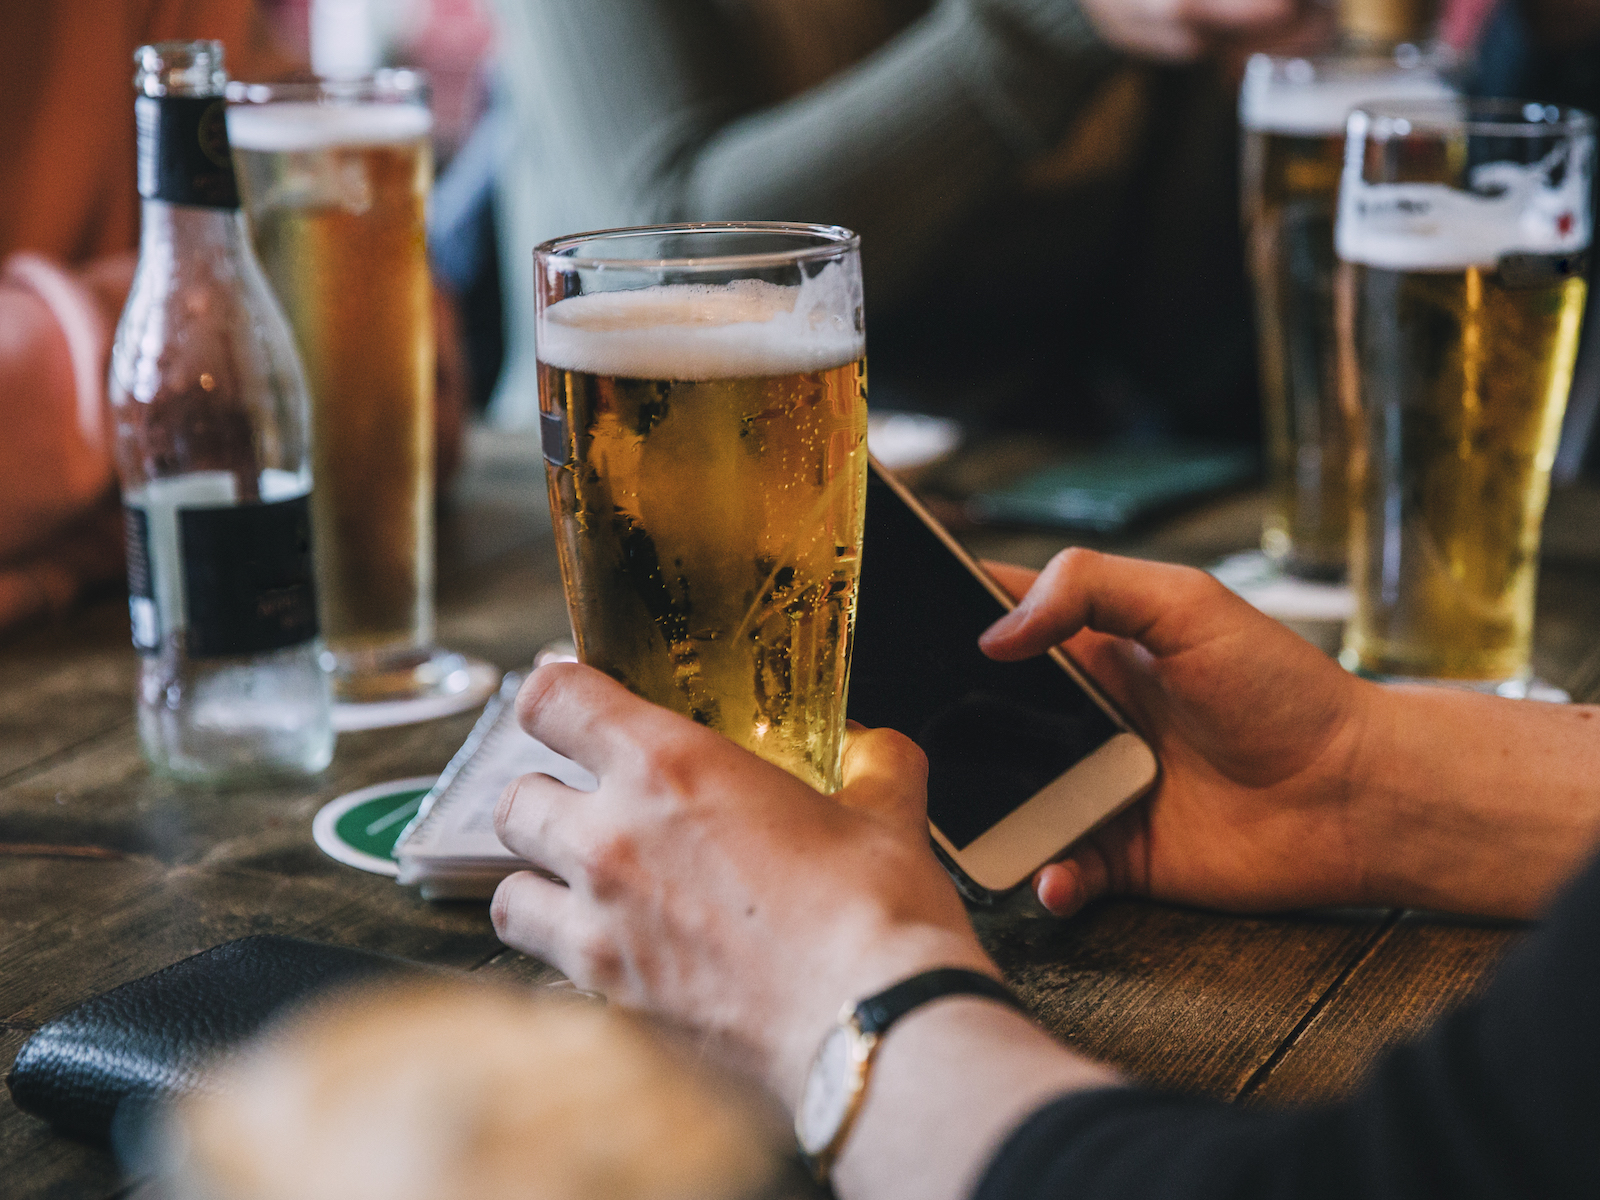 Louisiana's Identification App Can Be Used to Verify Age When Purchasing Alcohol